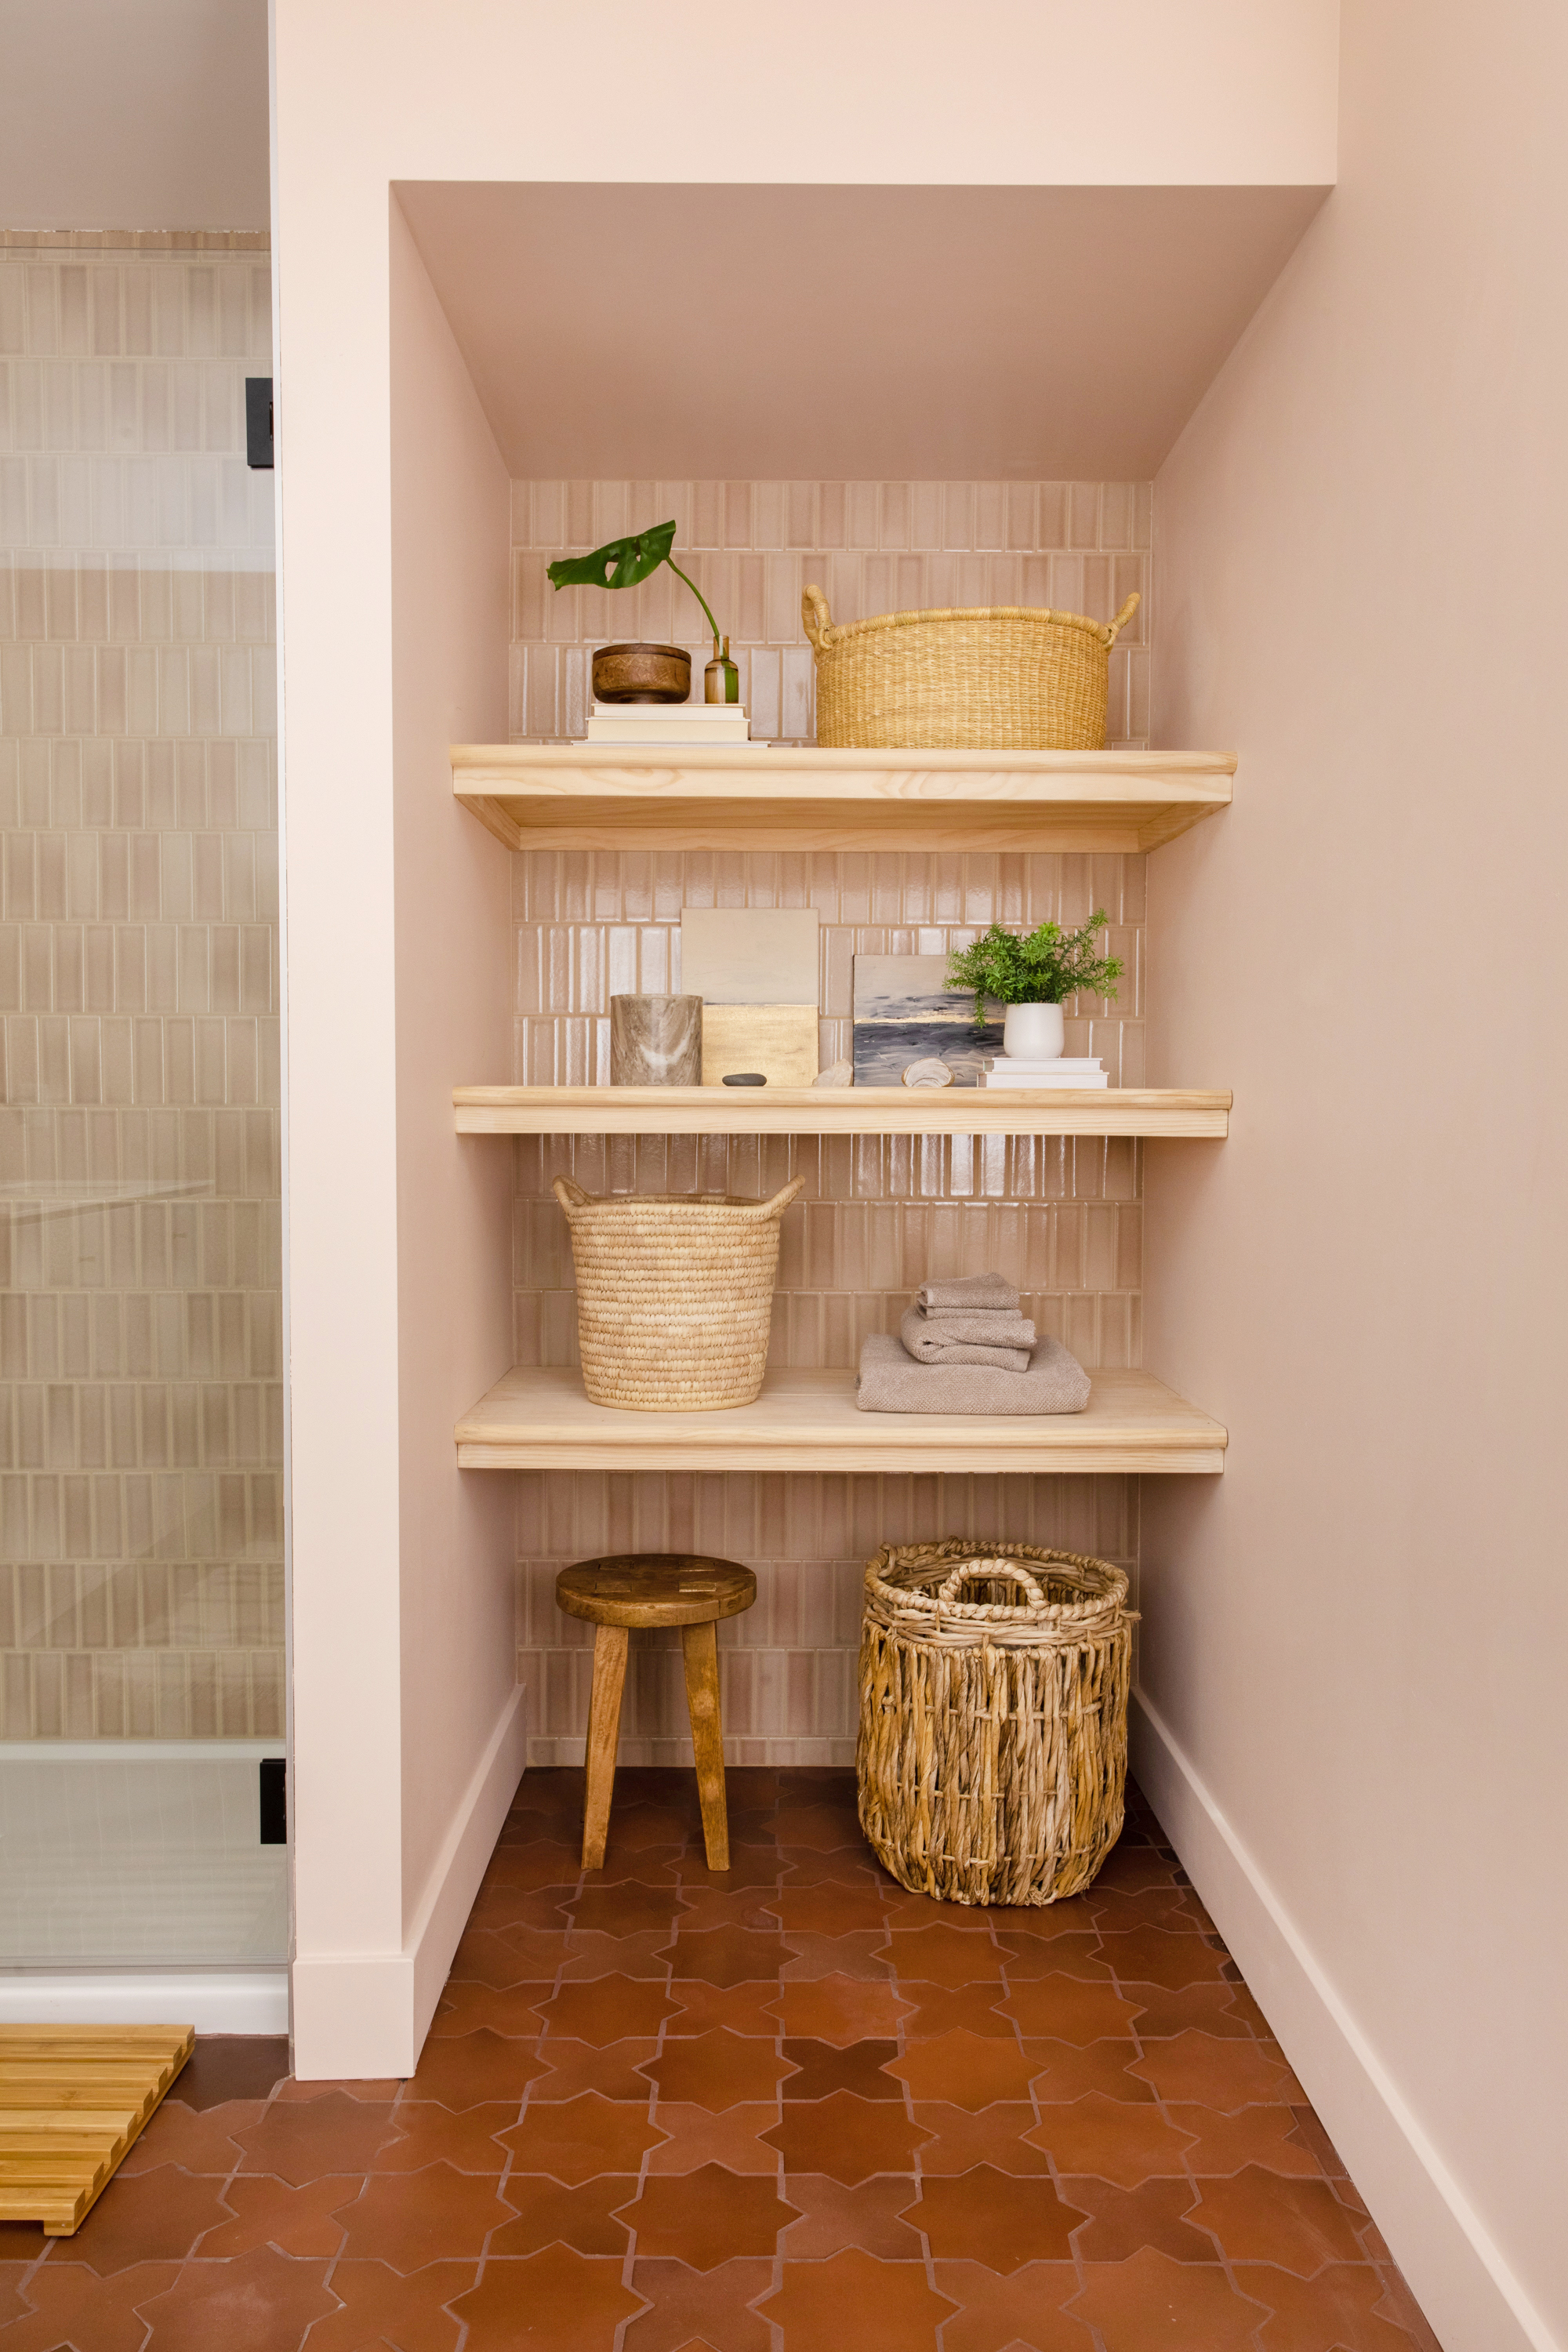 Sometimes more is better, especially when it comes to tile. Megan continued her wall tile into the open shelving into her basement bath. See more in our gallery!